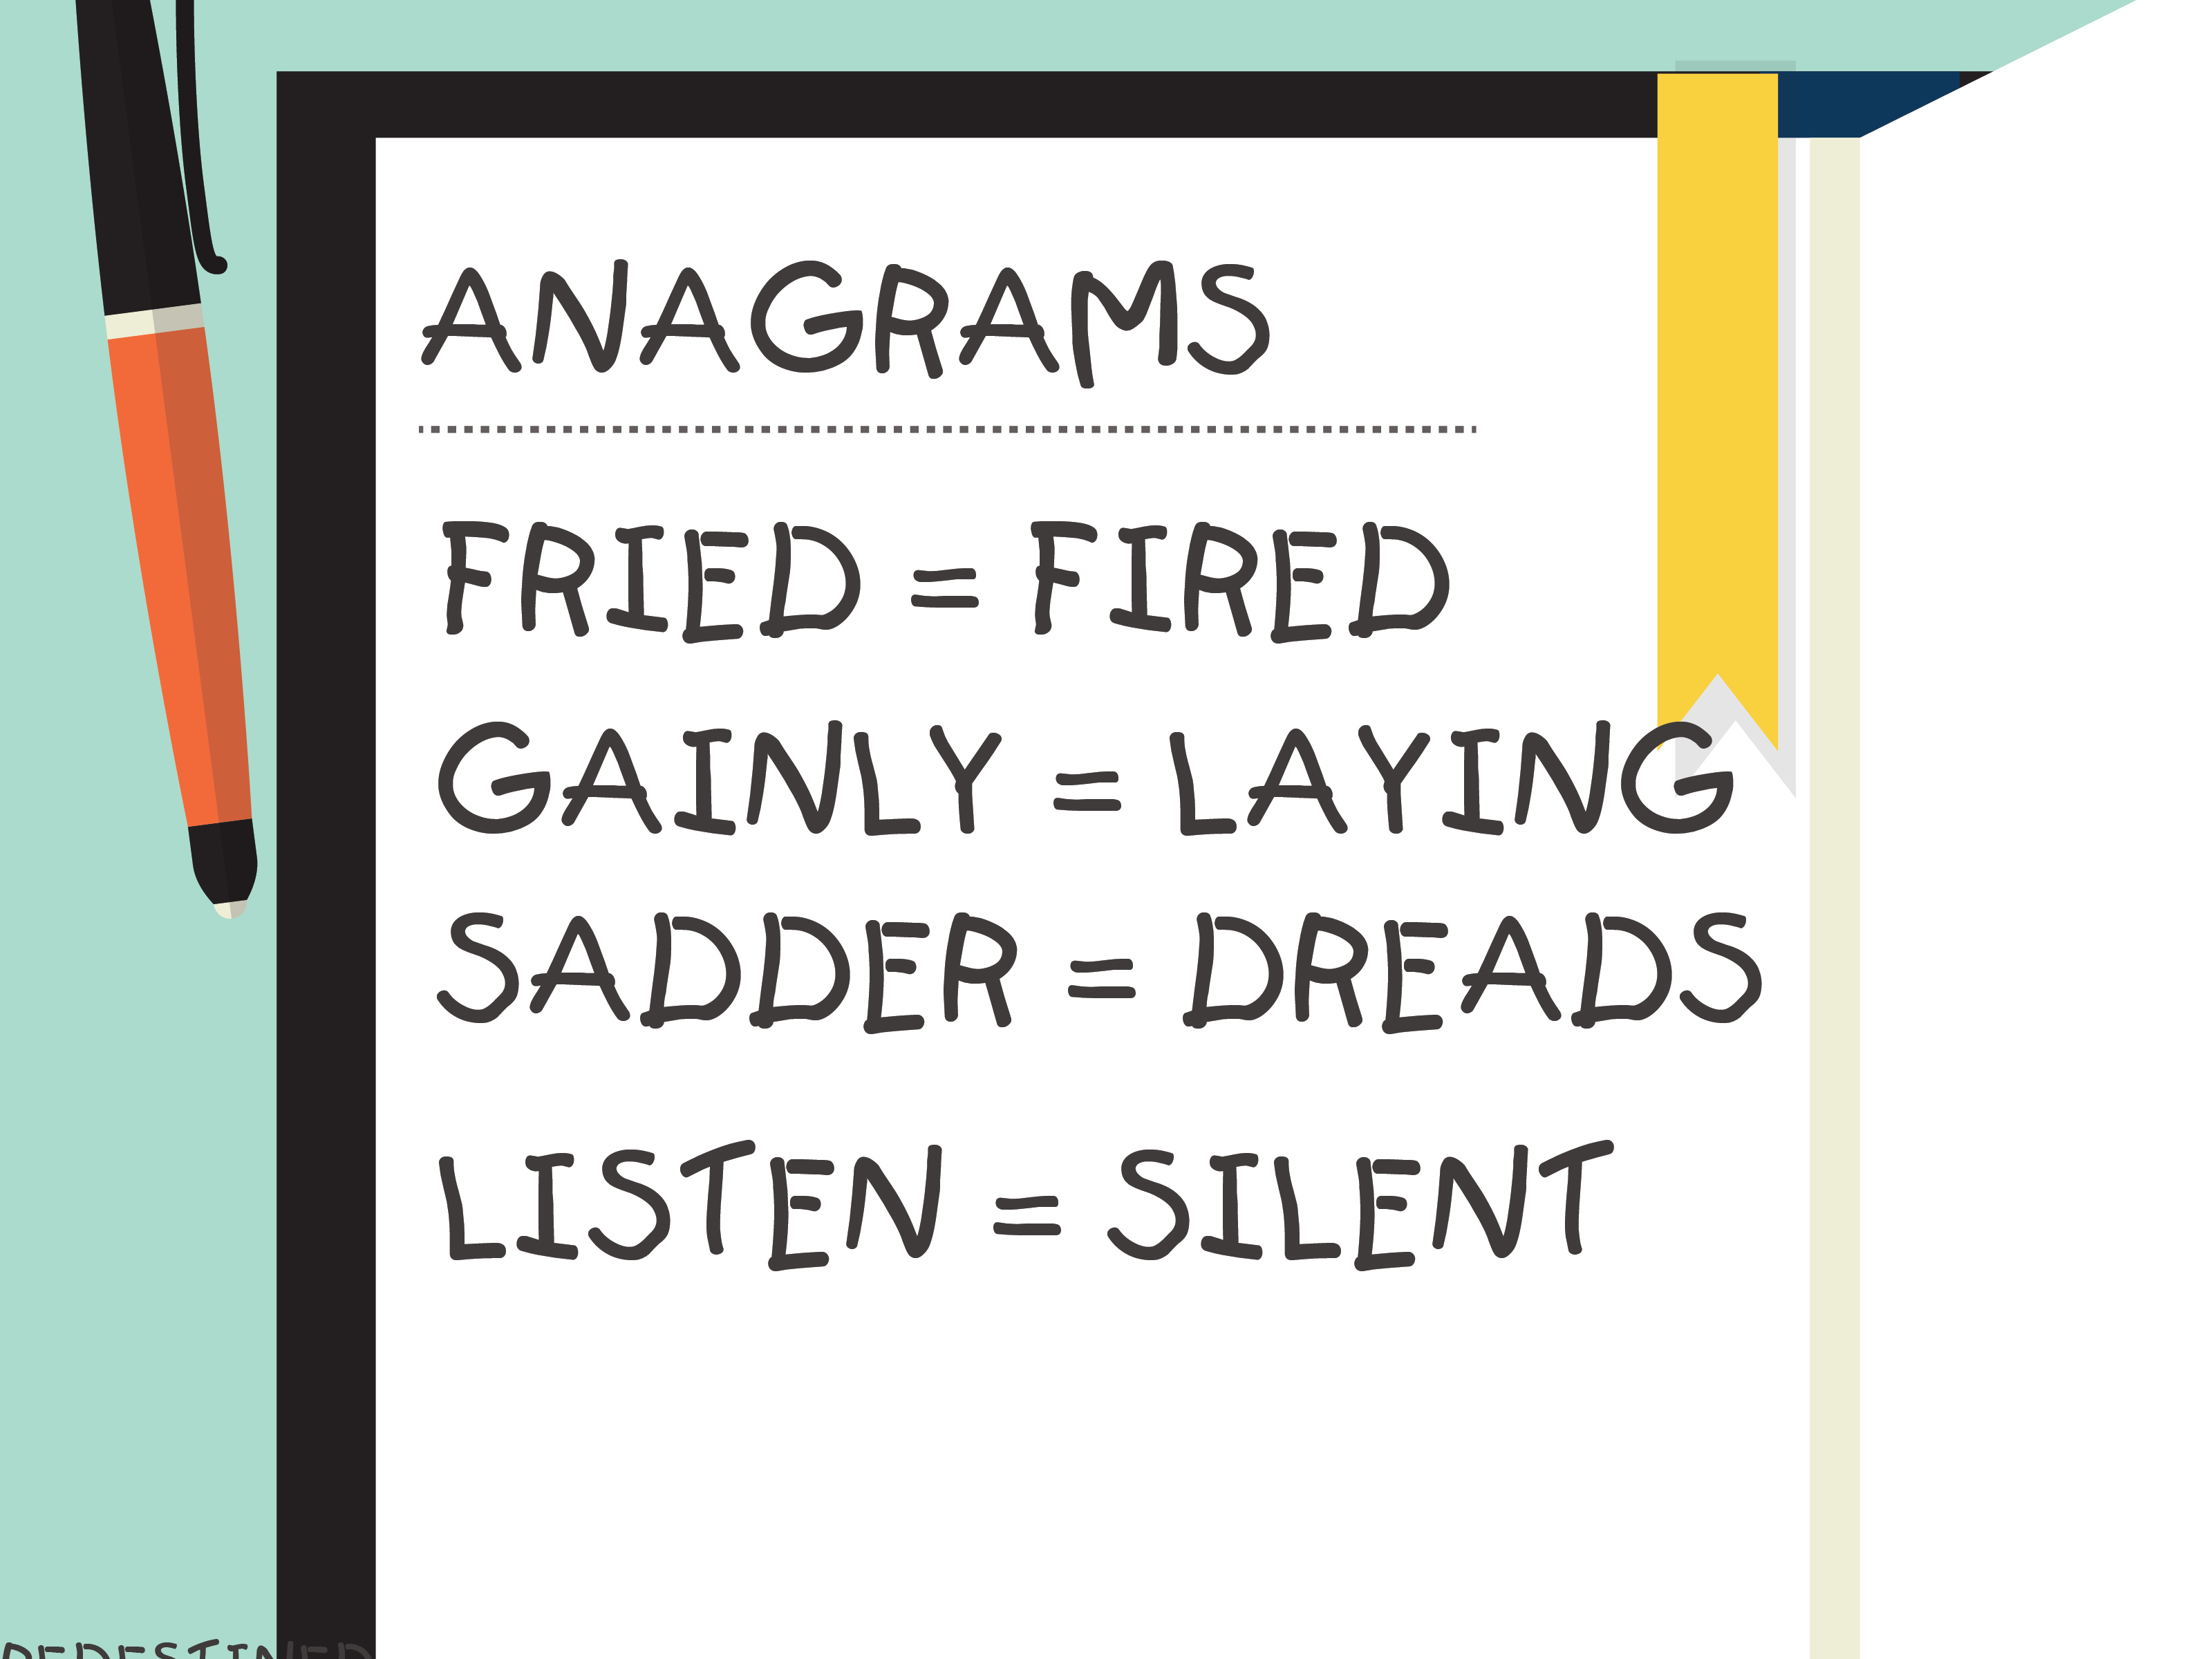 3 Ways To Solve Anagrams Effectively - Wikihow - Free Printable Anagram Magic Square Puzzles